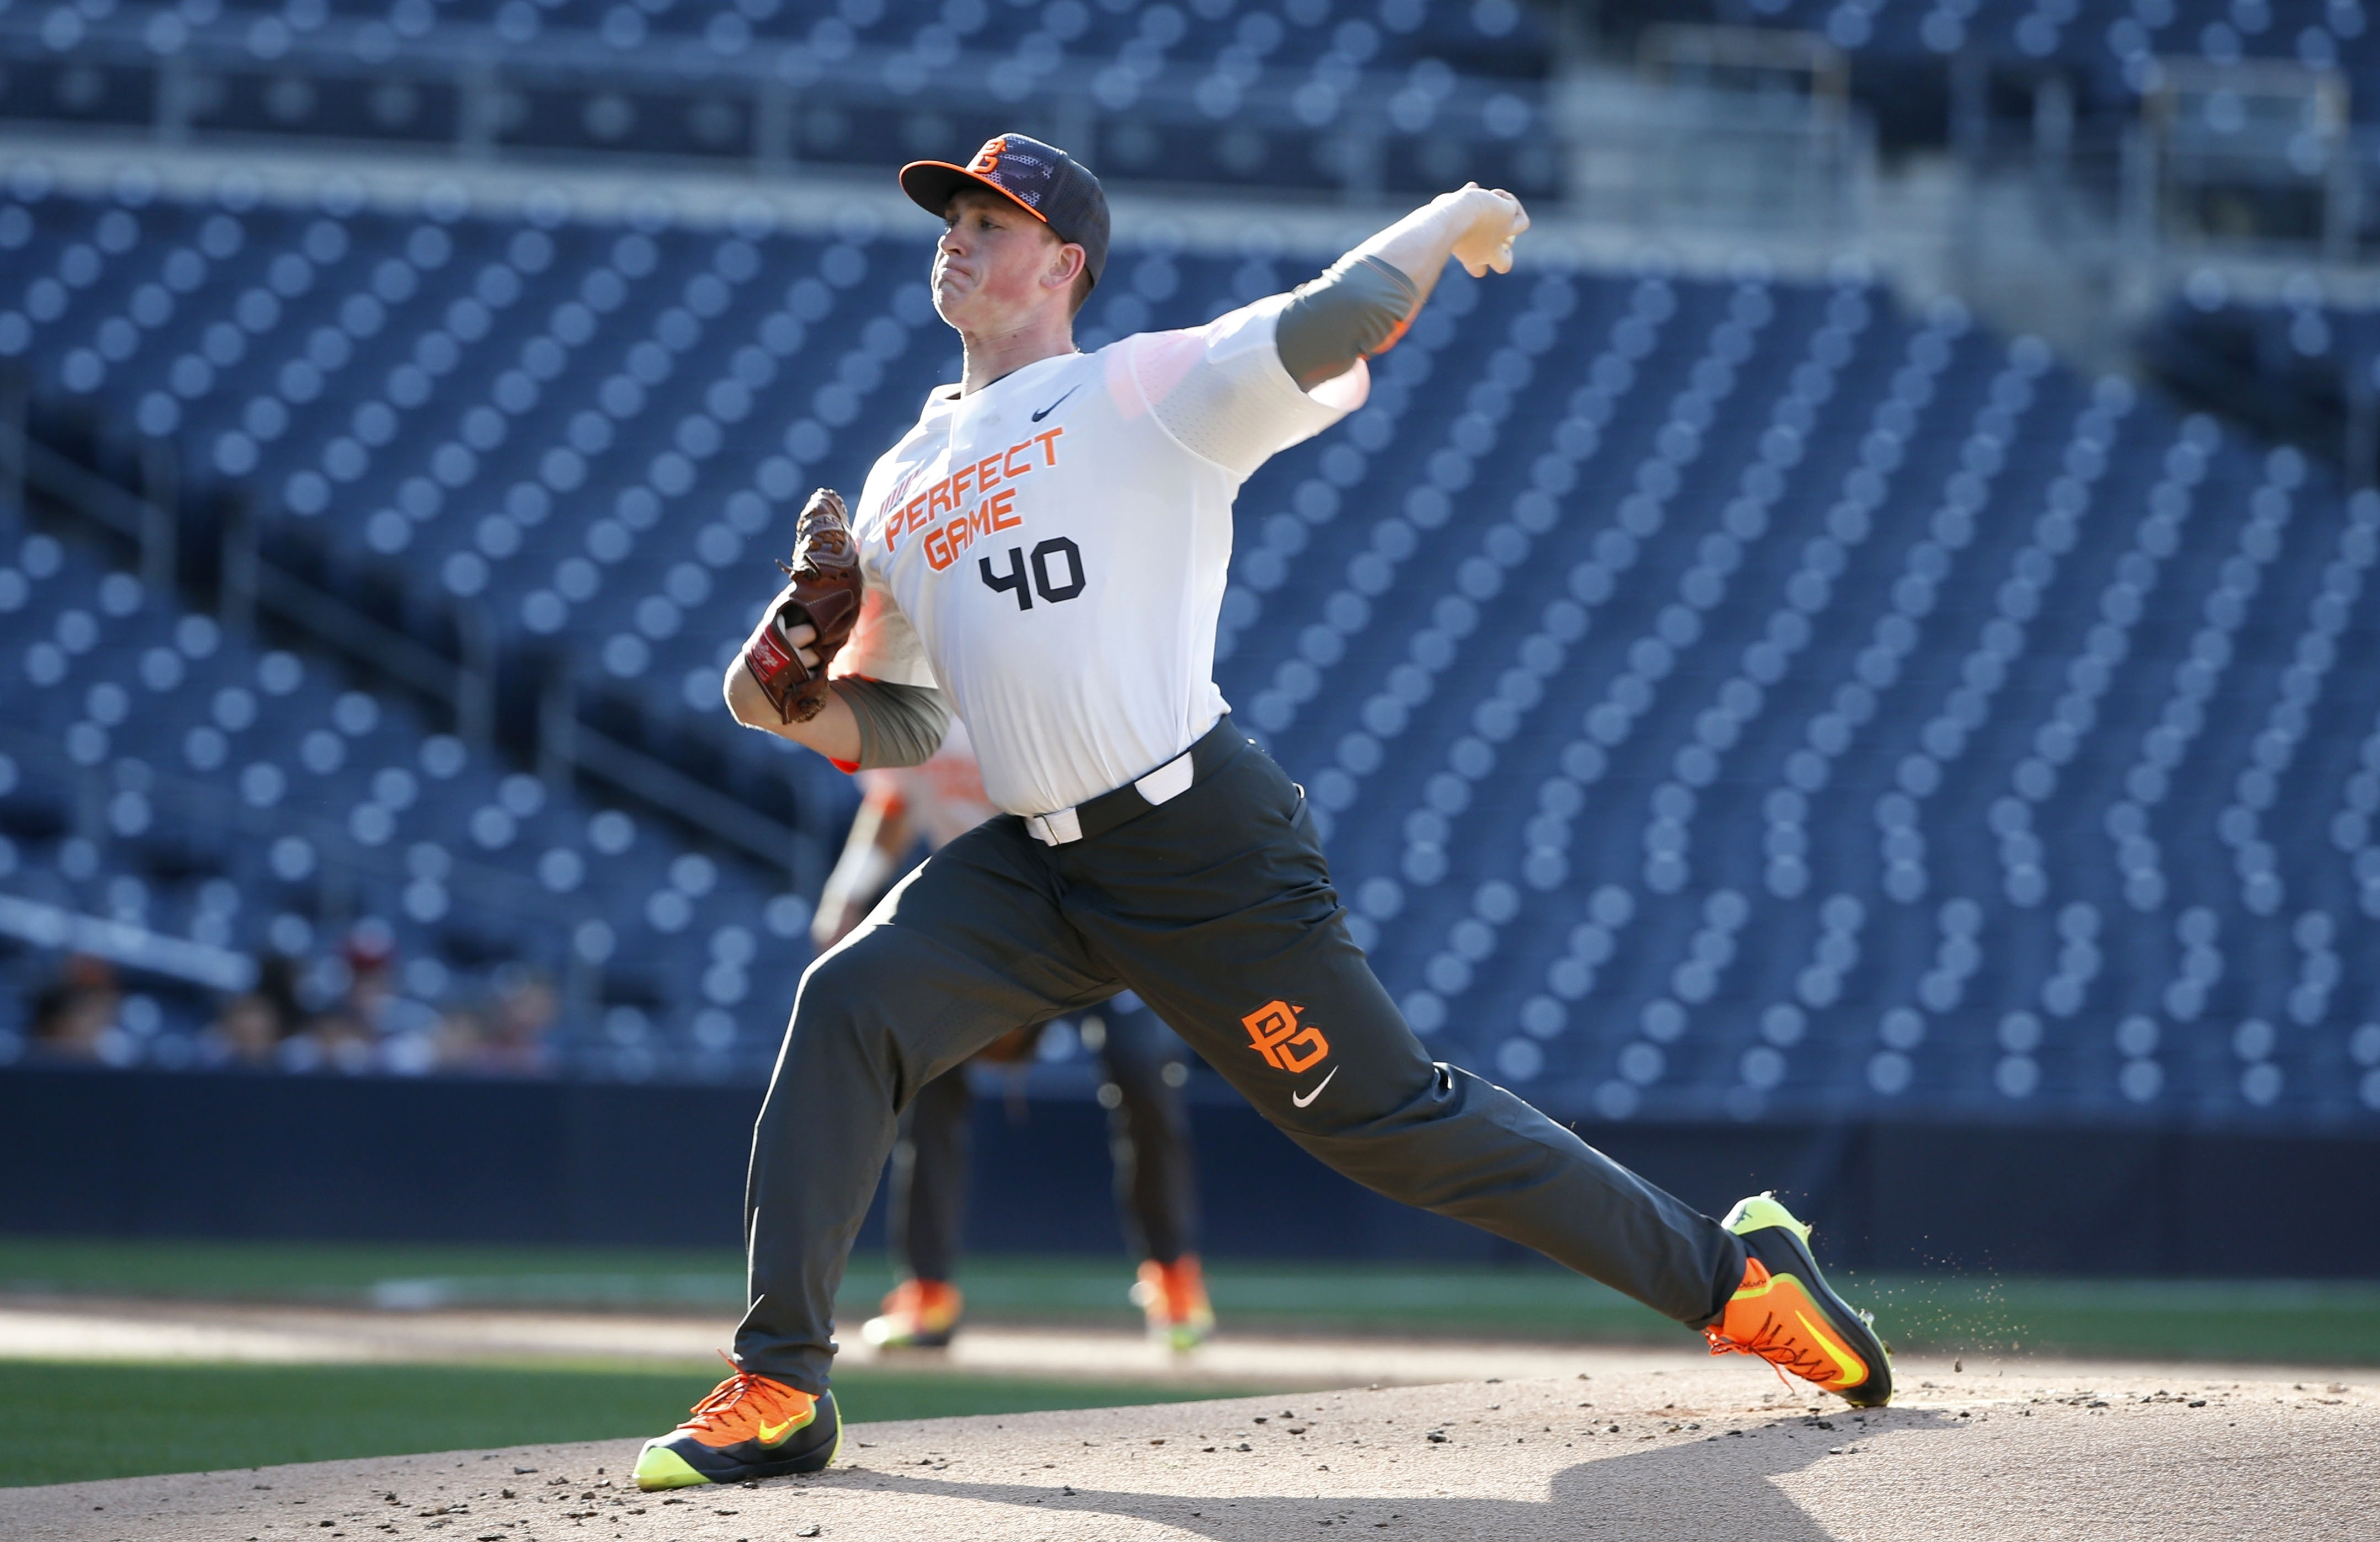 FILE - In this Aug. 16, 2015, file photo, Jason Groome pitches during the Perfect Game All-American Classic high school baseball game, in San Diego. The 17-year-old from Barnegat High School along the New Jersey Shore is 6-foot-5, 225 pounds, throws in th